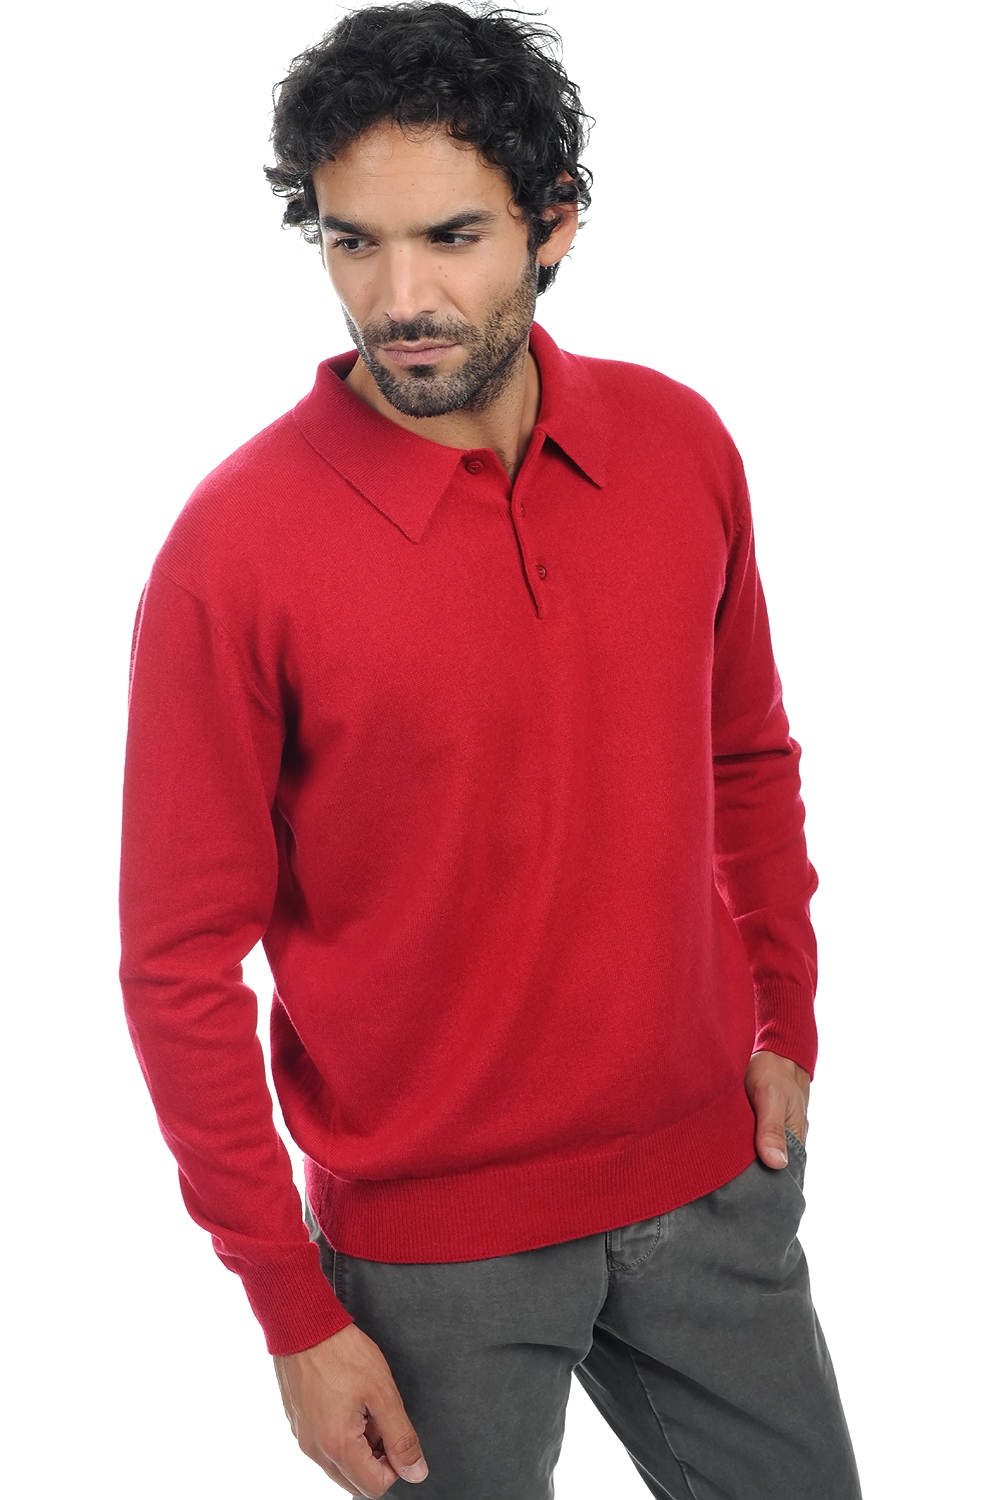 cashmere men polo style sweaters alexandre blood red m